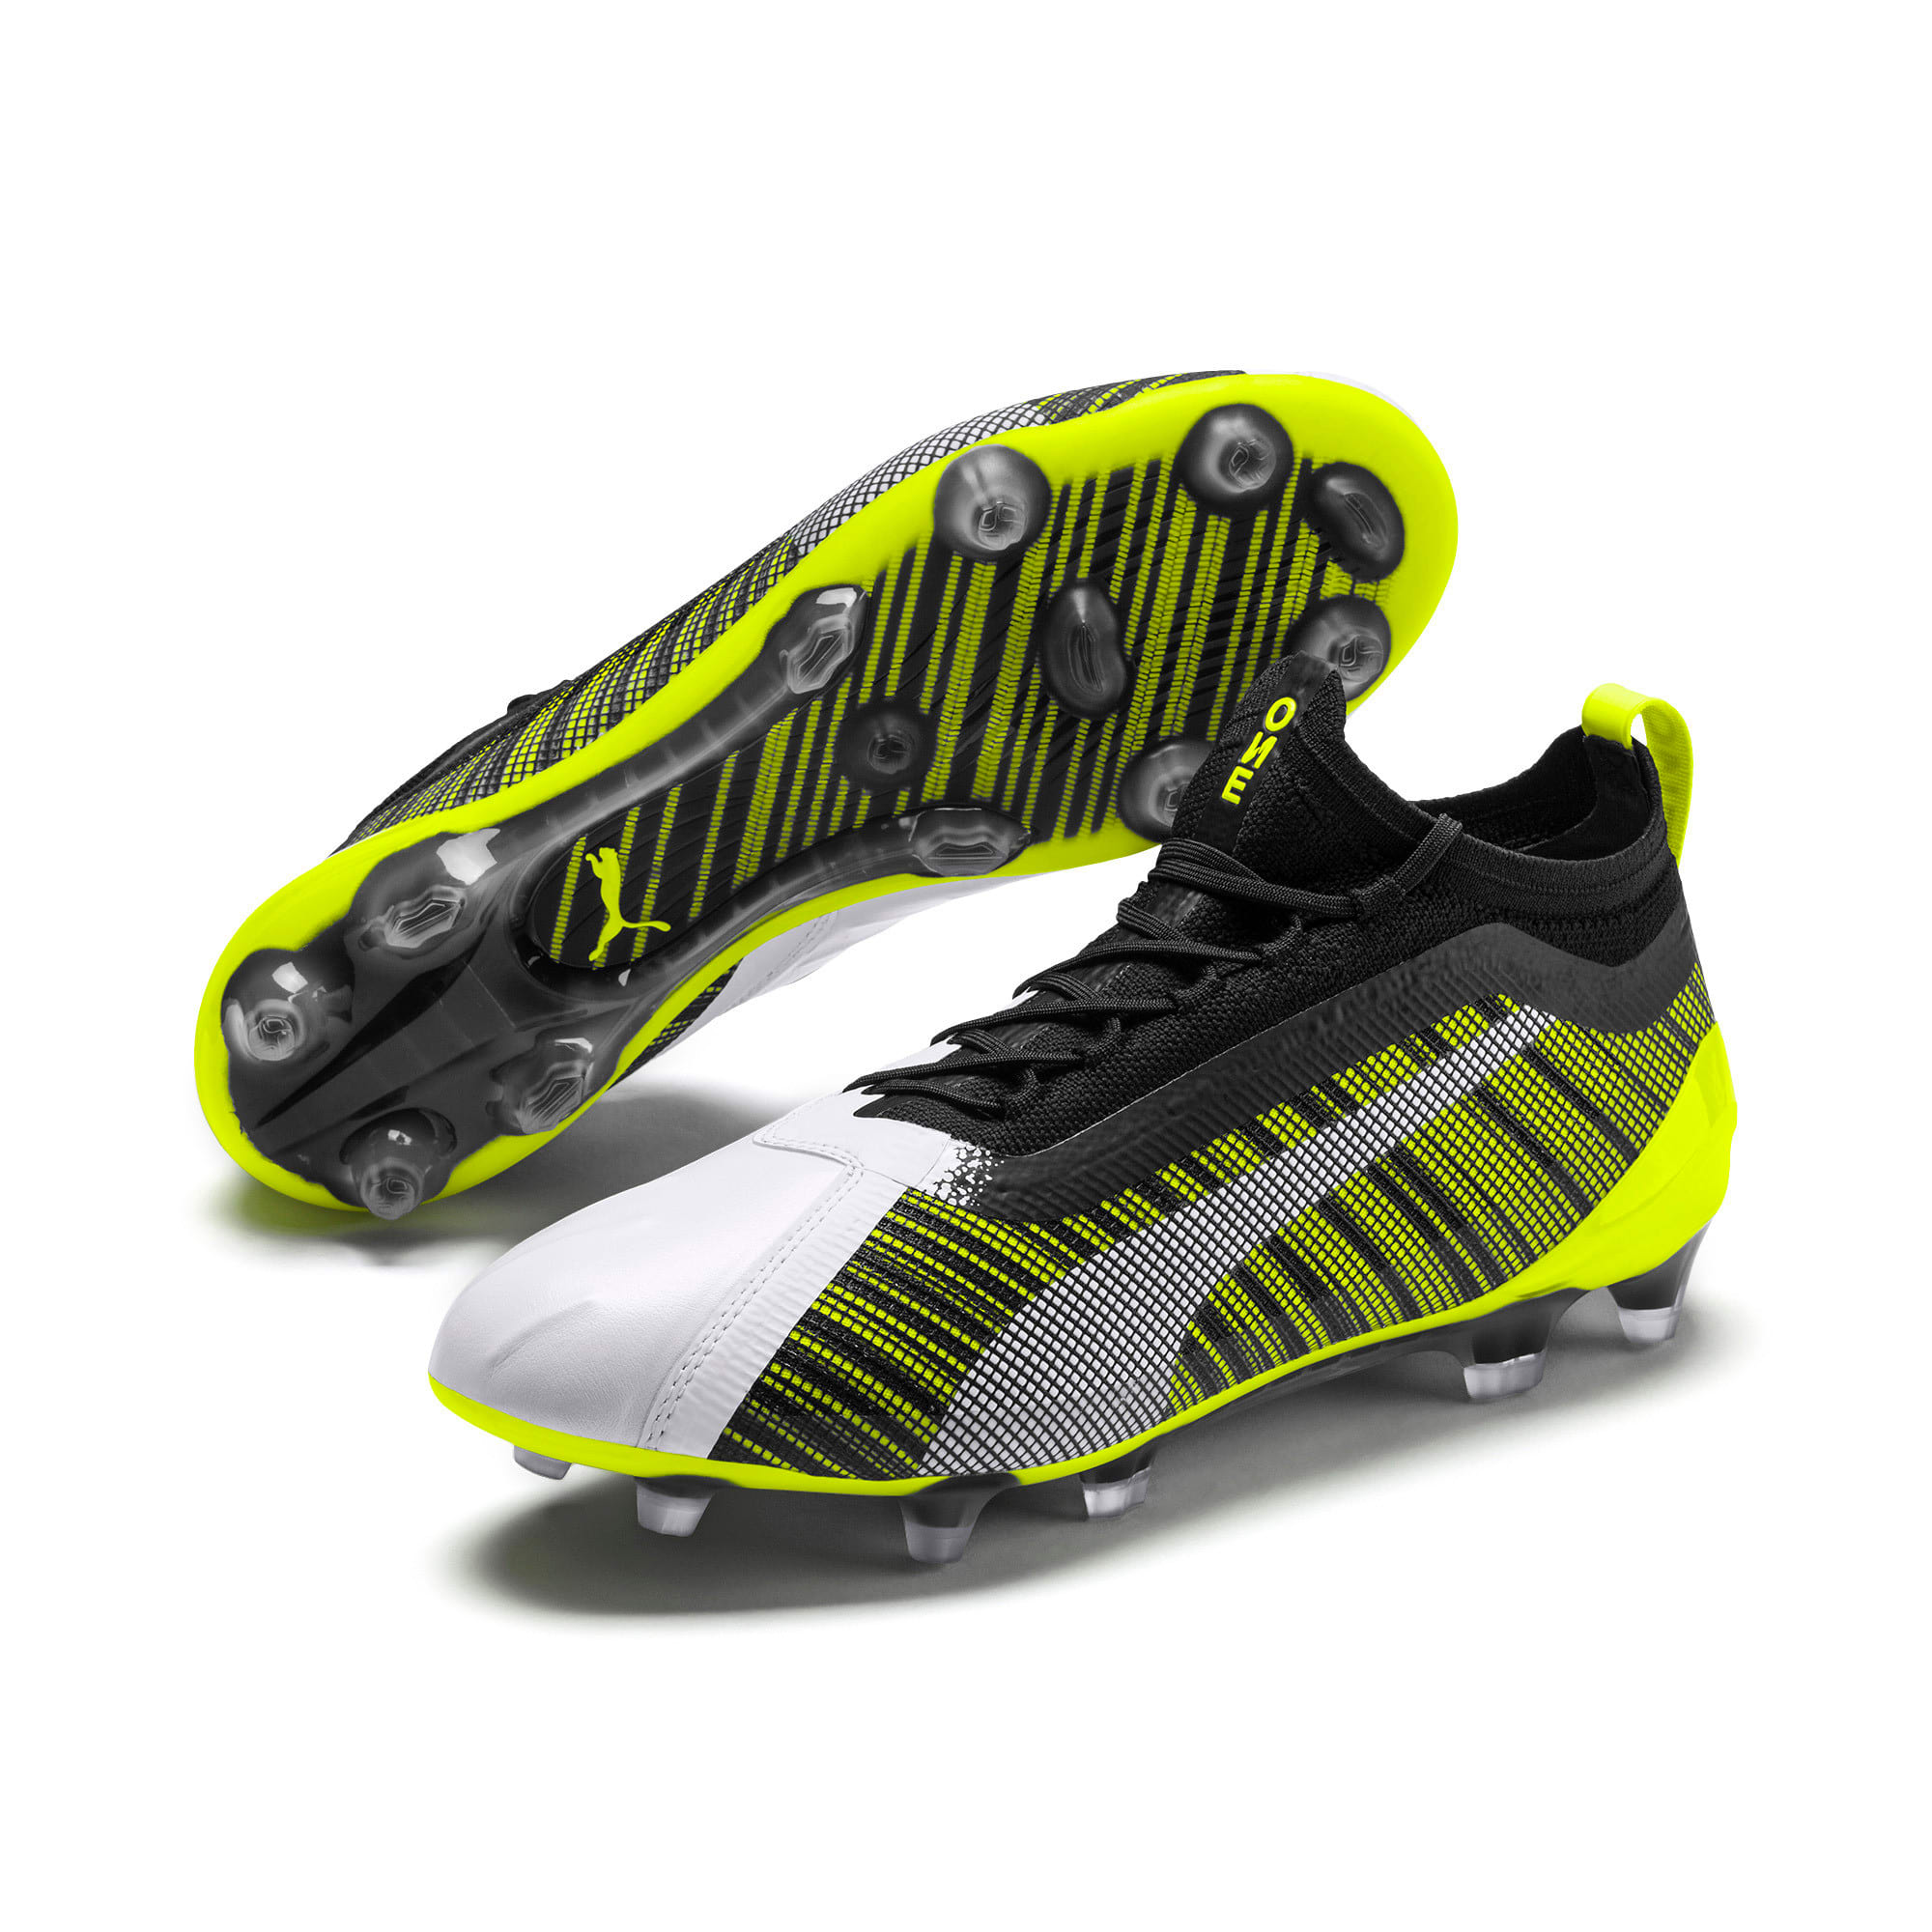 Thumbnail 3 of PUMA ONE 5.1 FG/AG Men's Soccer Cleats, White-Black-Yellow Alert, medium